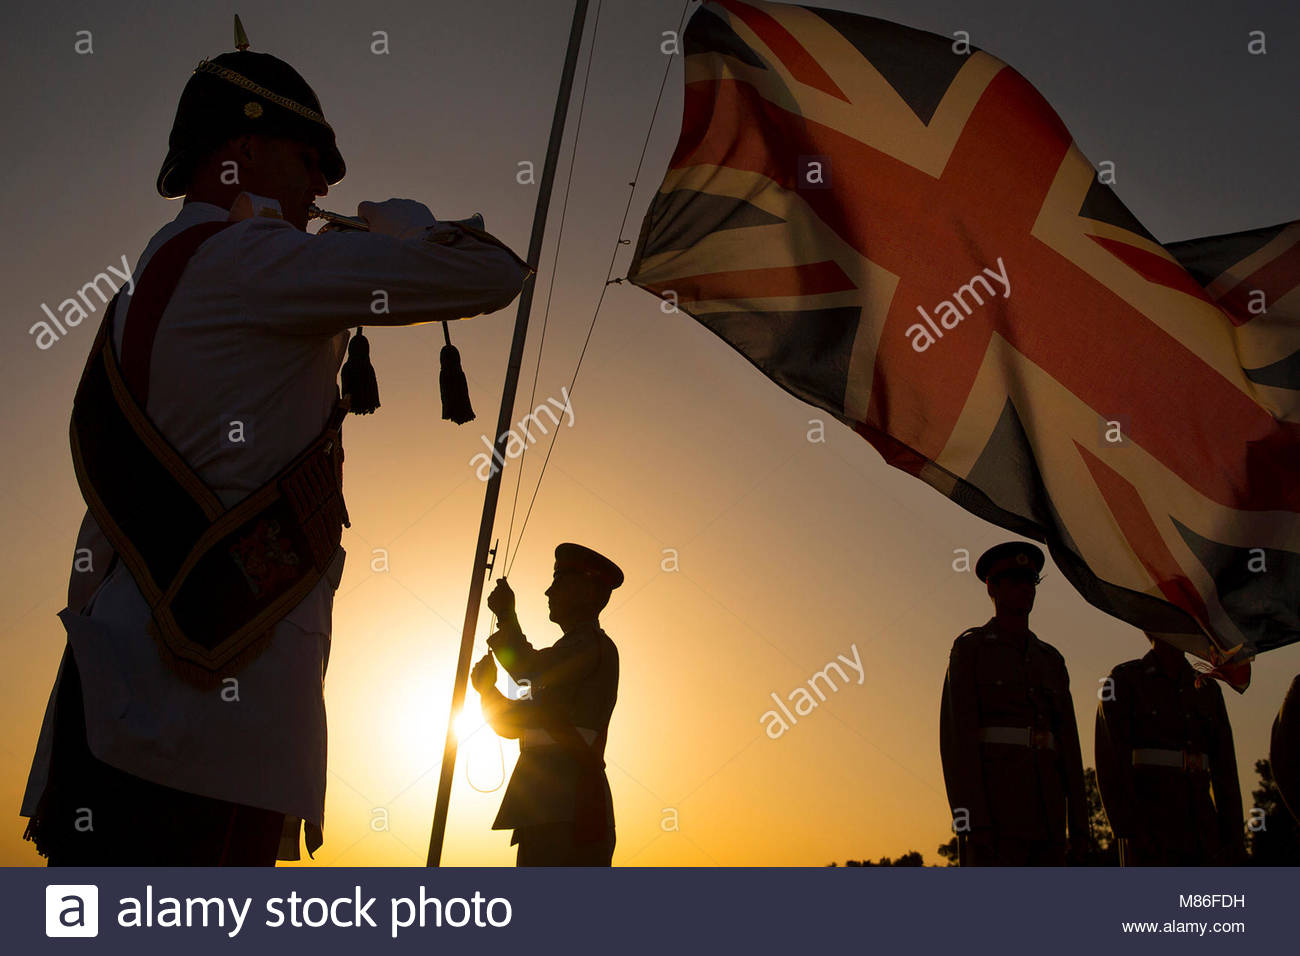 Sunset Ceremony in Episkopi. Pictured are personnel from Episkopi Garrison in Cyprus lowering the Union Jack on Stock Photo